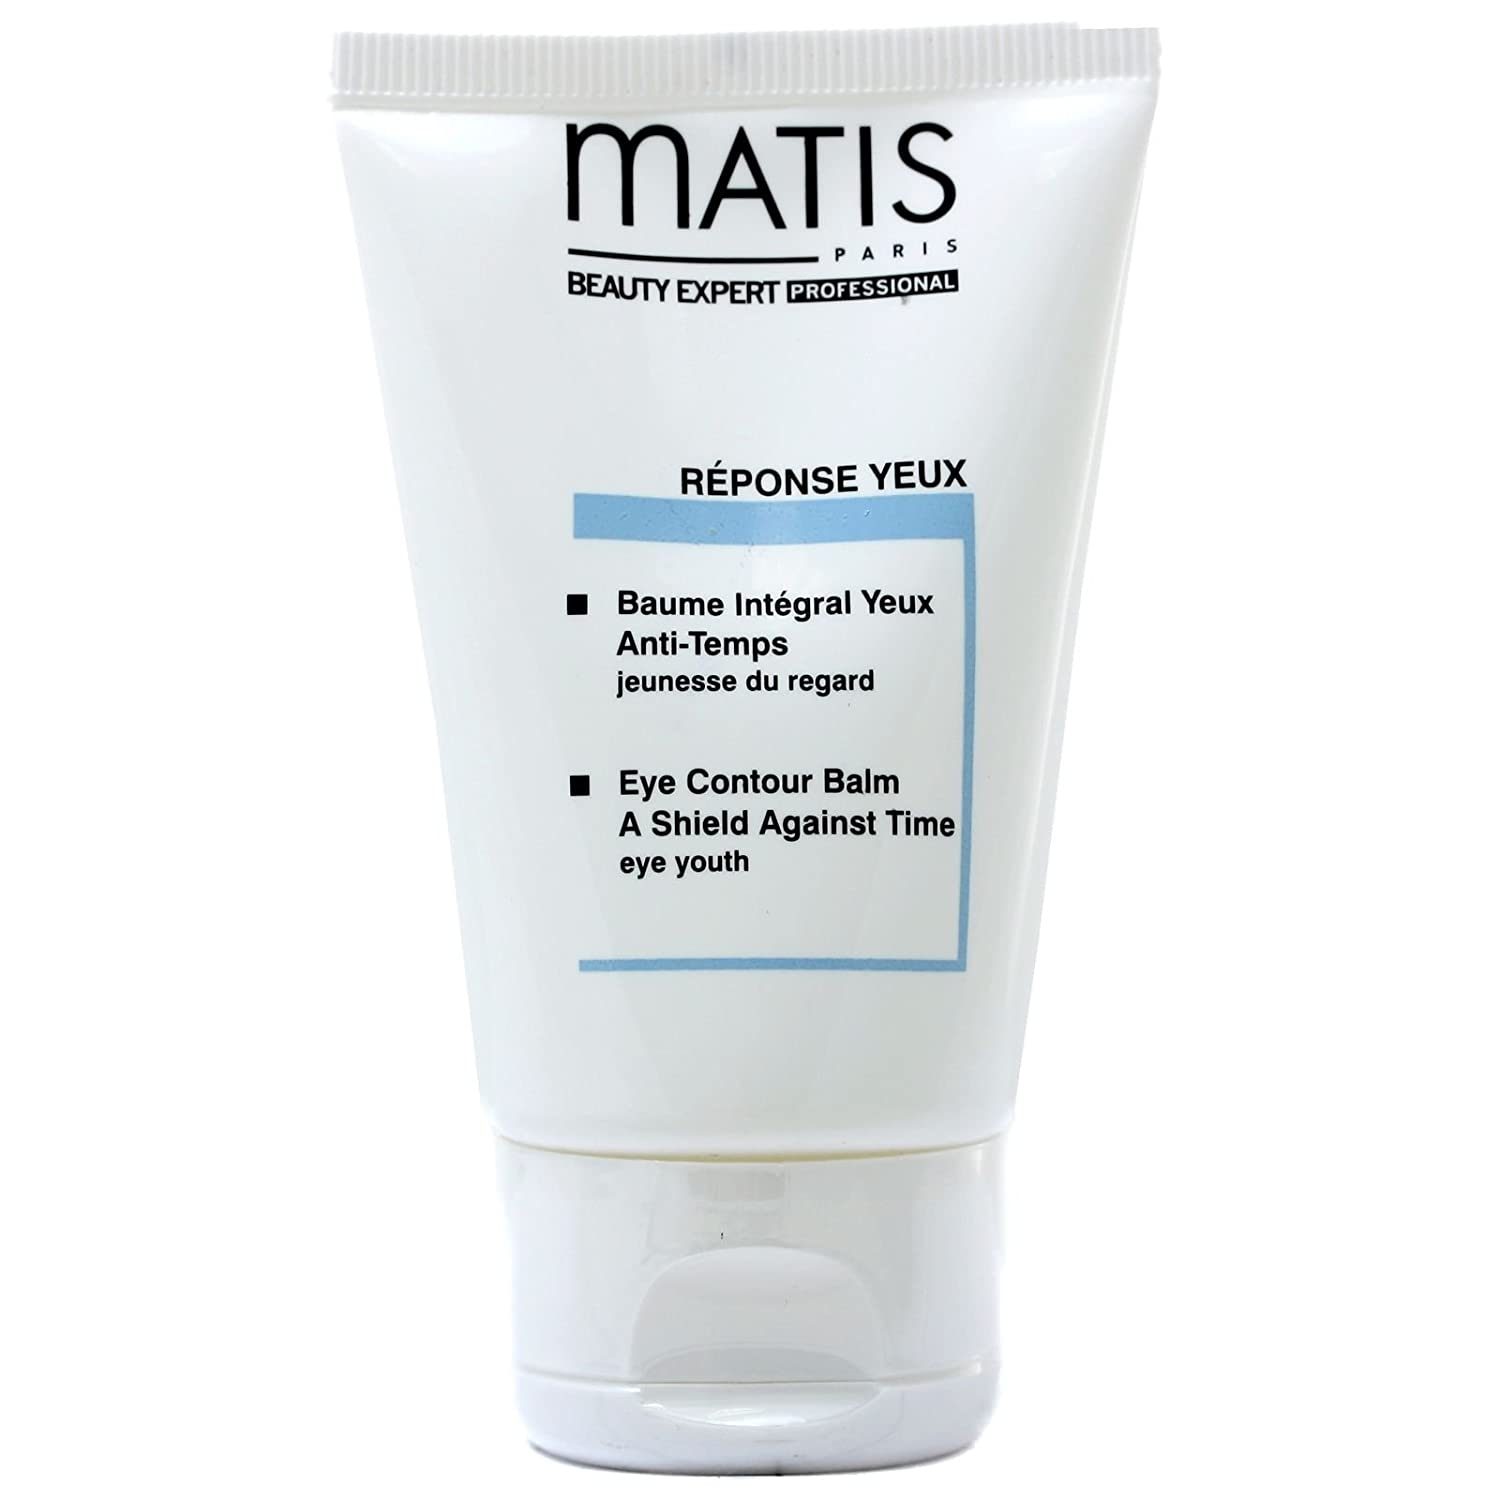 Matis Reponse Yeux Eye Contour Balm a Shield against Time 50ml/1.69oz (Salon Size) 58548